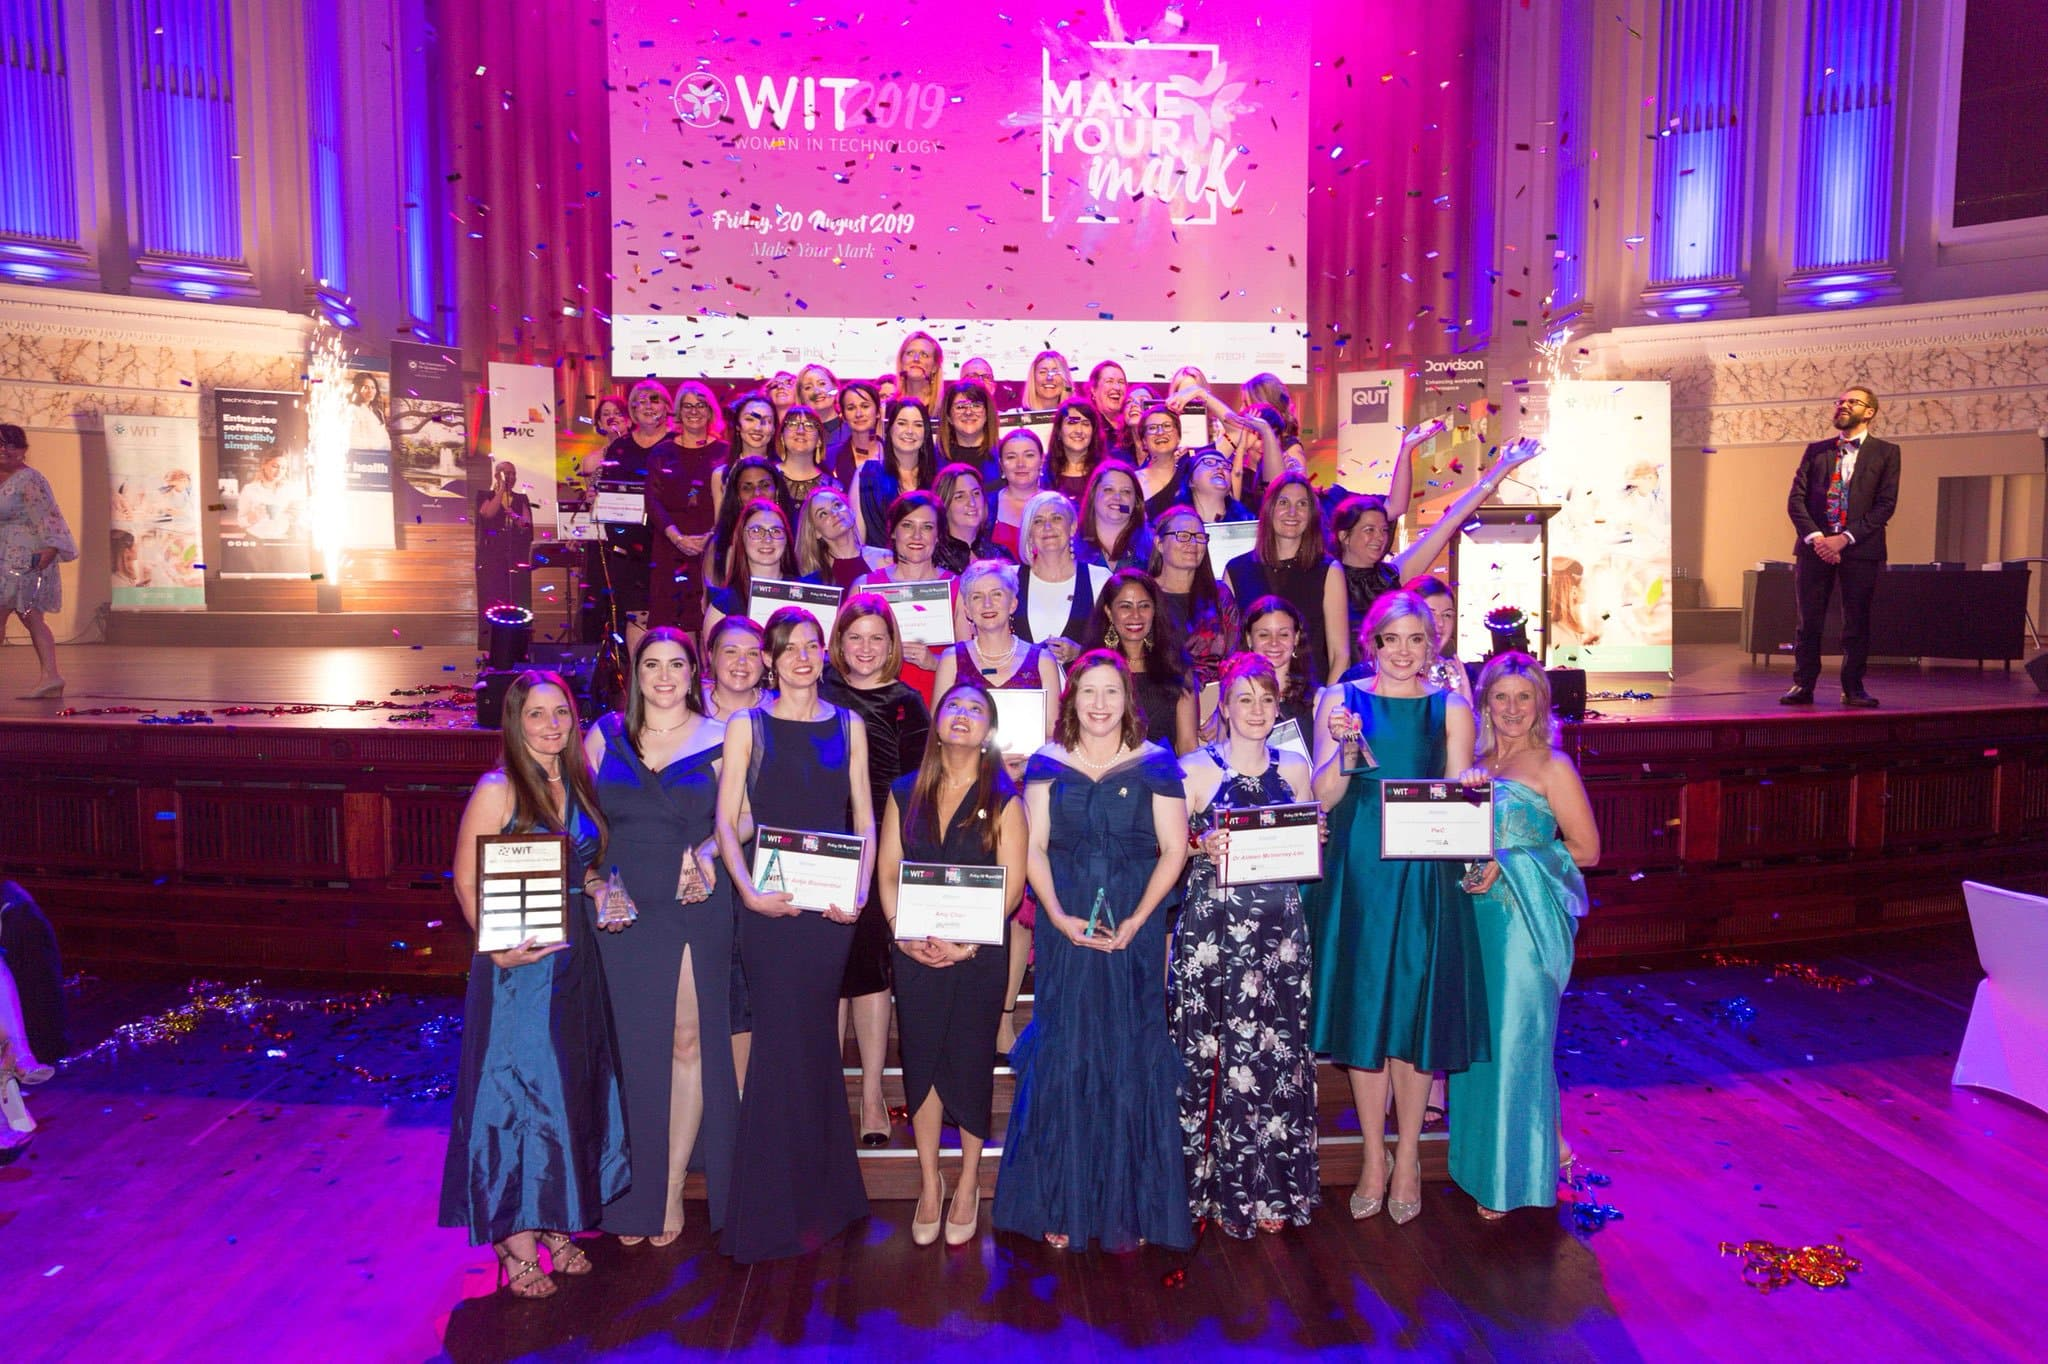 Women in Technology recognised for innovative work